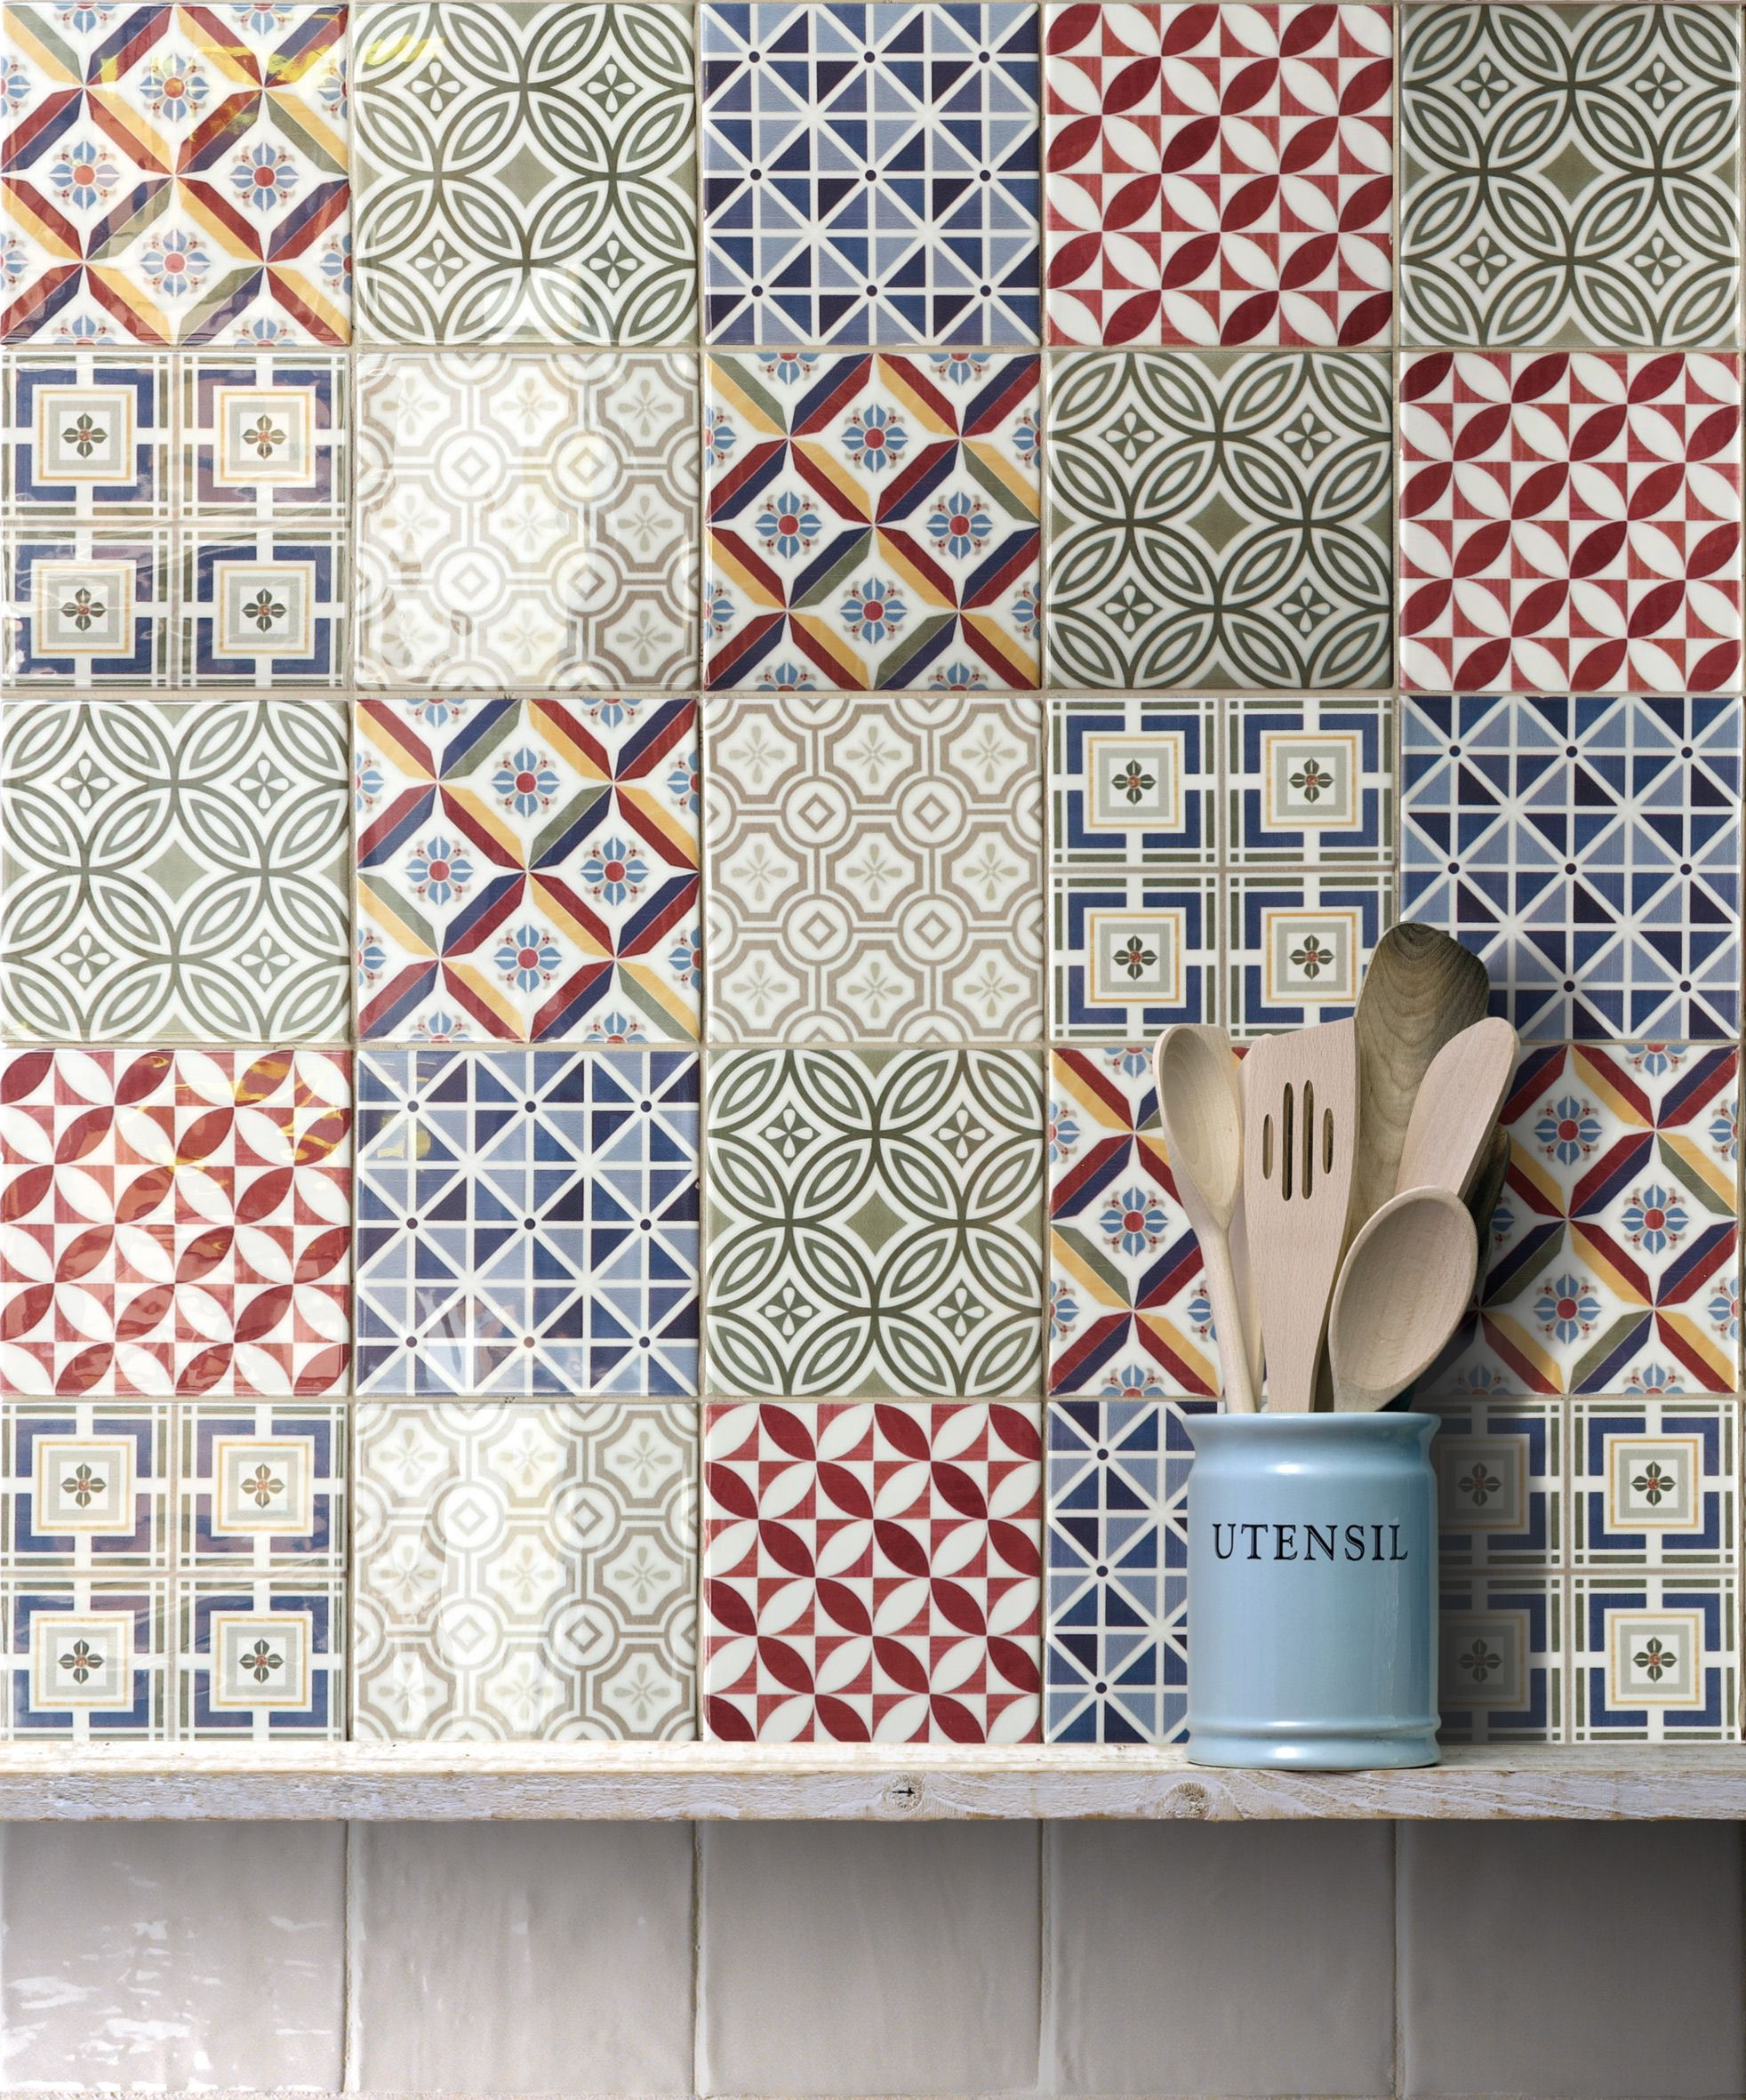 Pin On Patterned Tiles Ideas